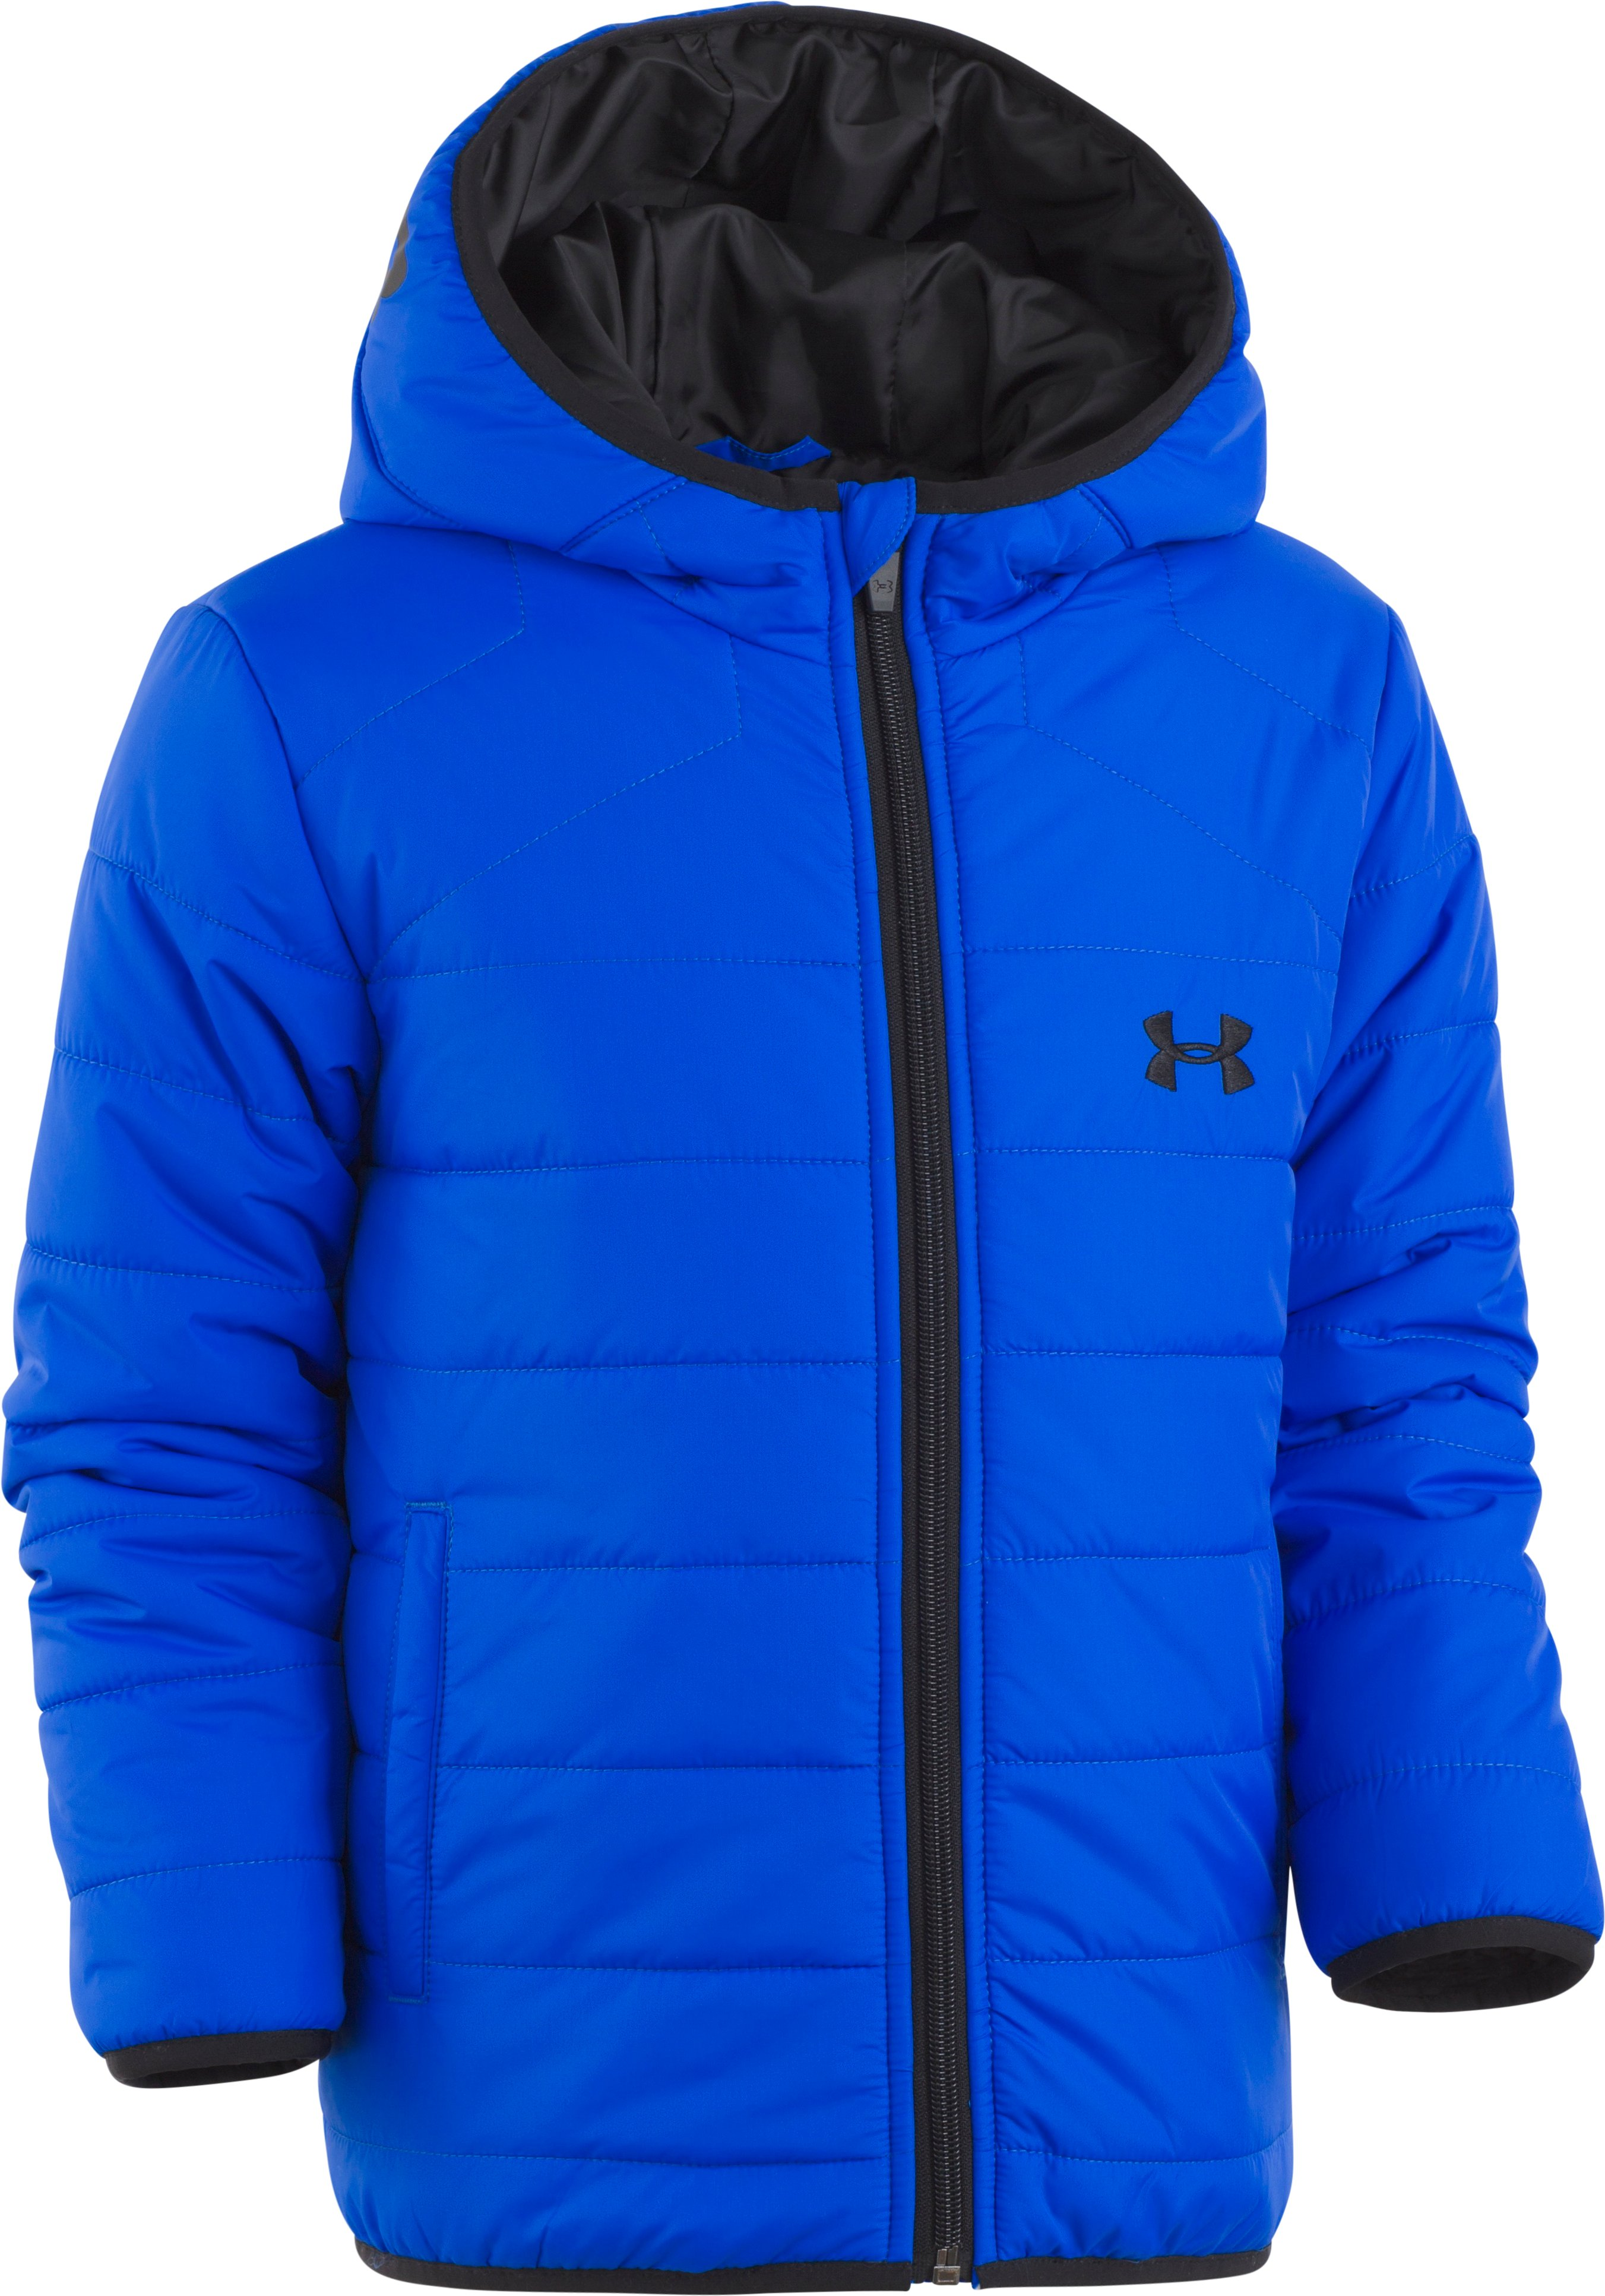 Boys' Infant UA Feature Puffer Jacket, ULTRA BLUE